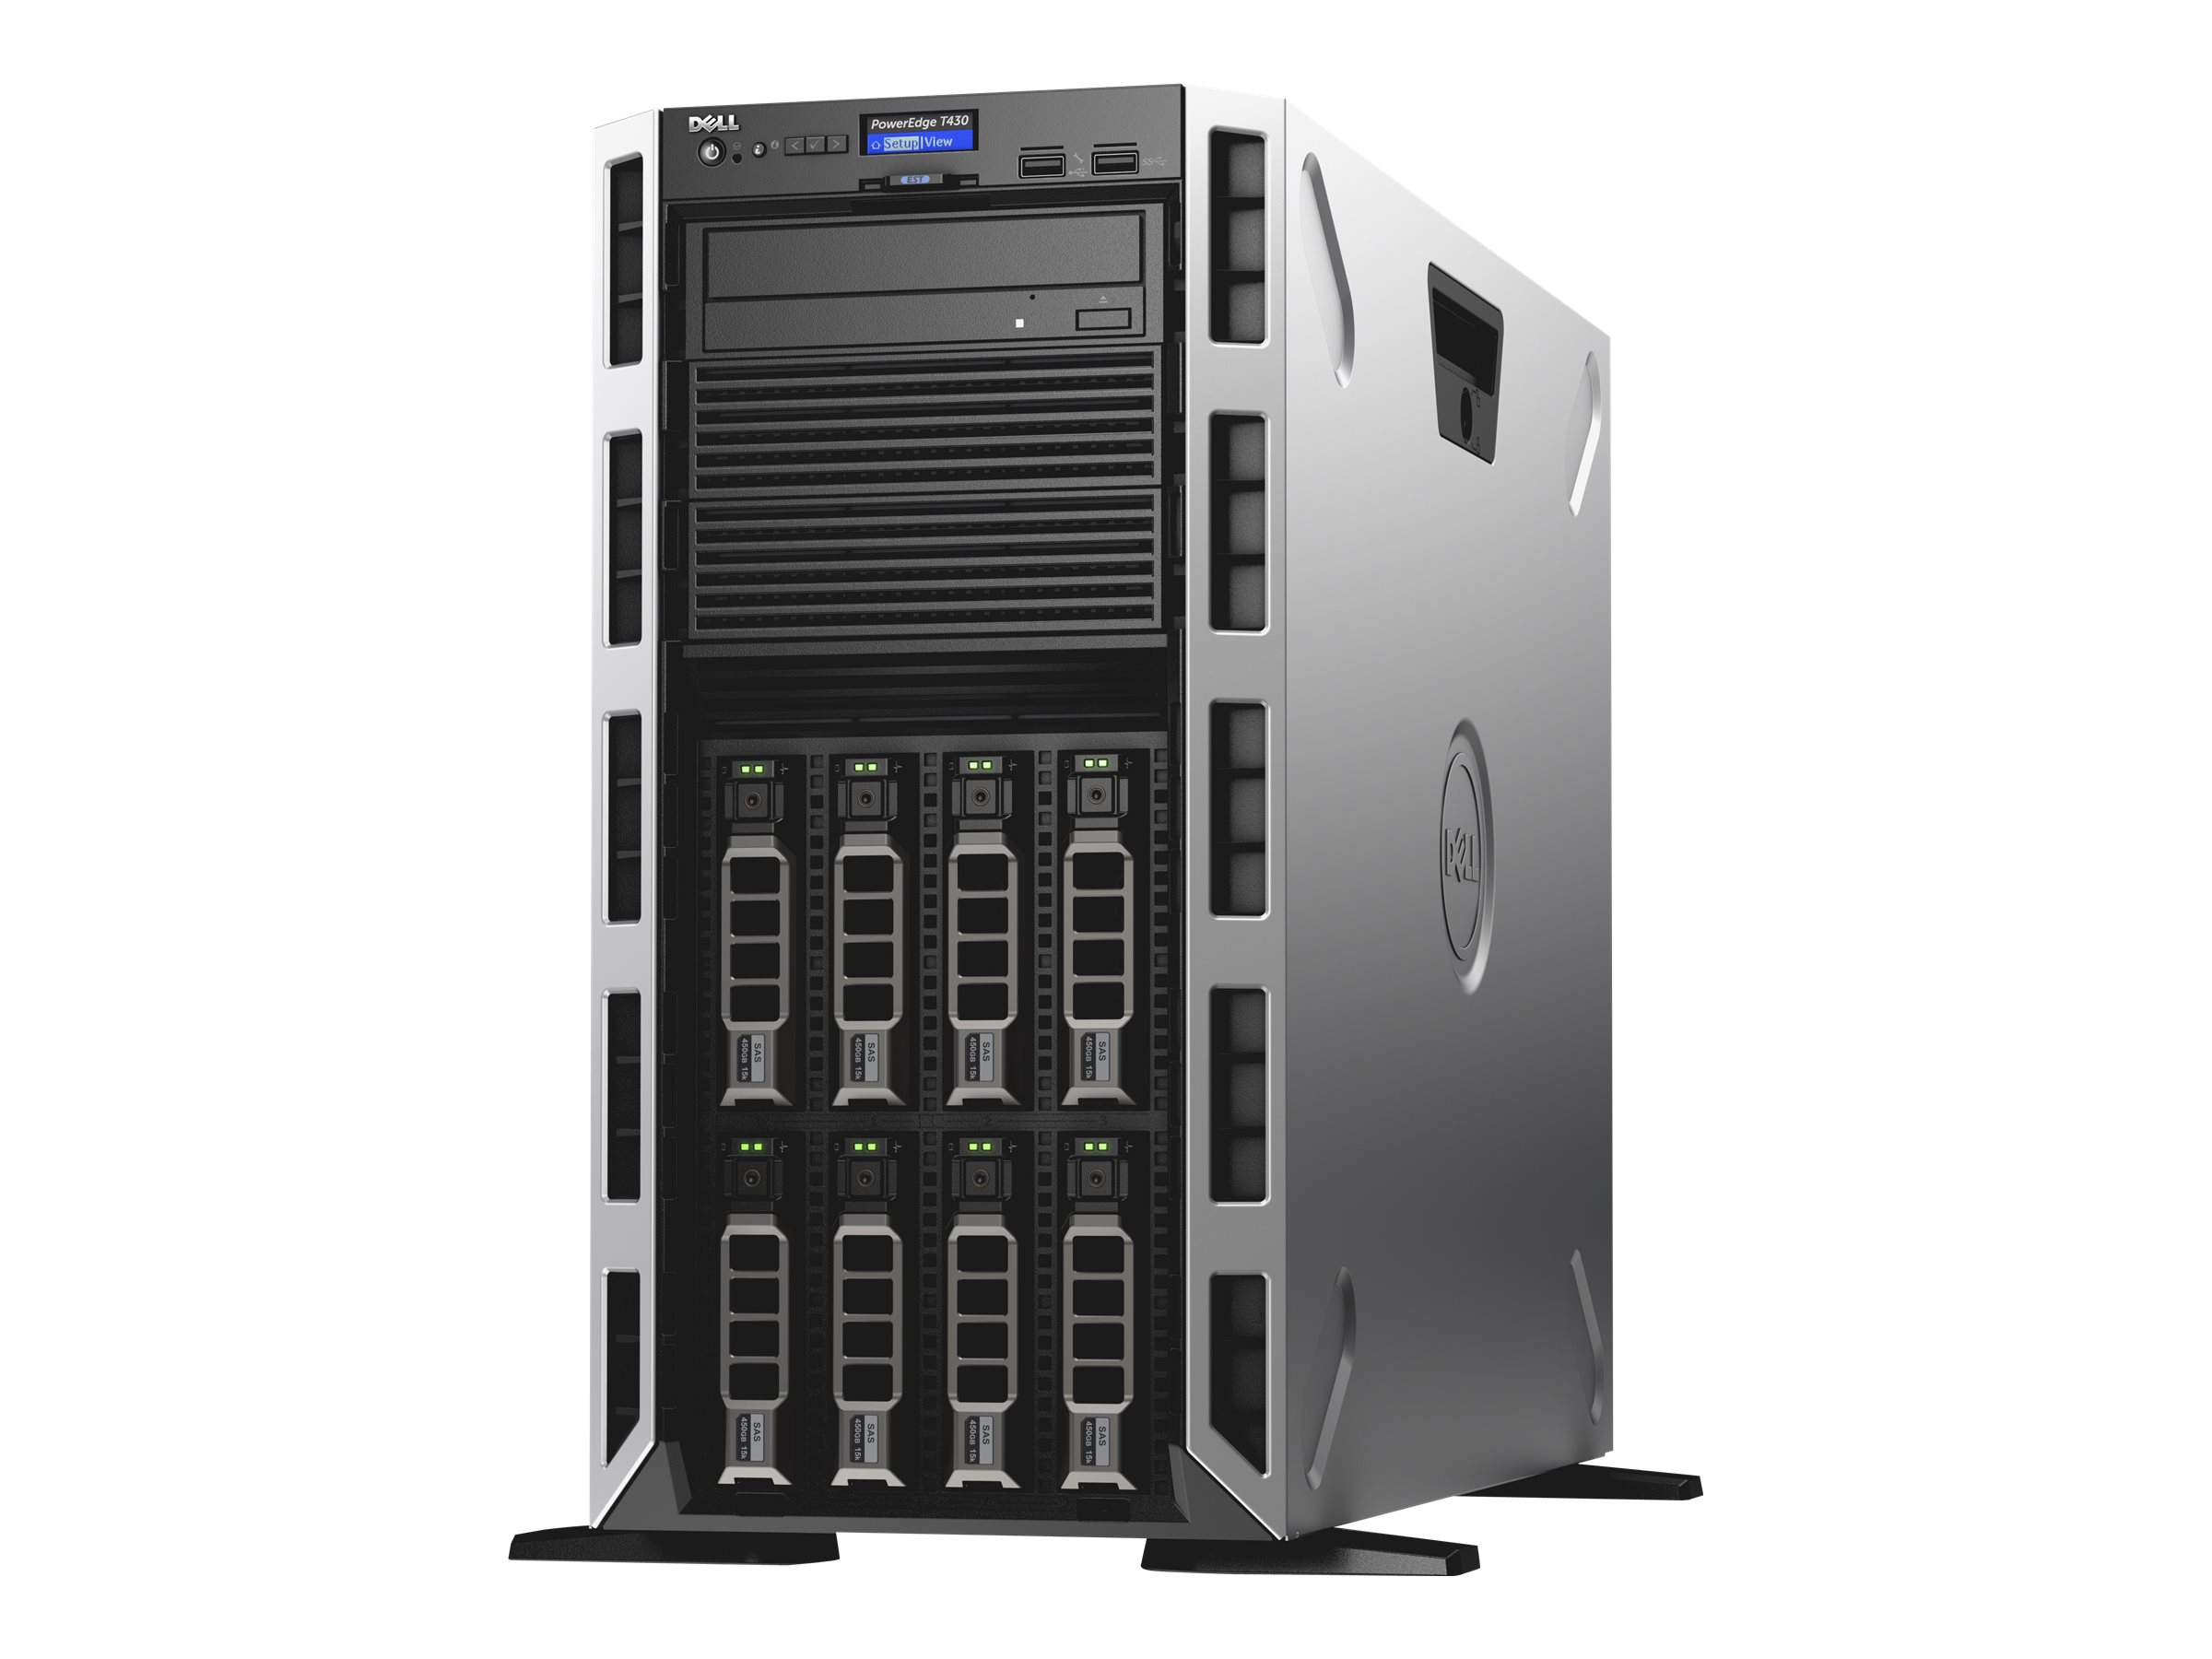 Dell PowerEdge T430 - Server - Tower - 5U - zweiweg - 1 x Xeon E5-2609V4 / 1.7 GHz